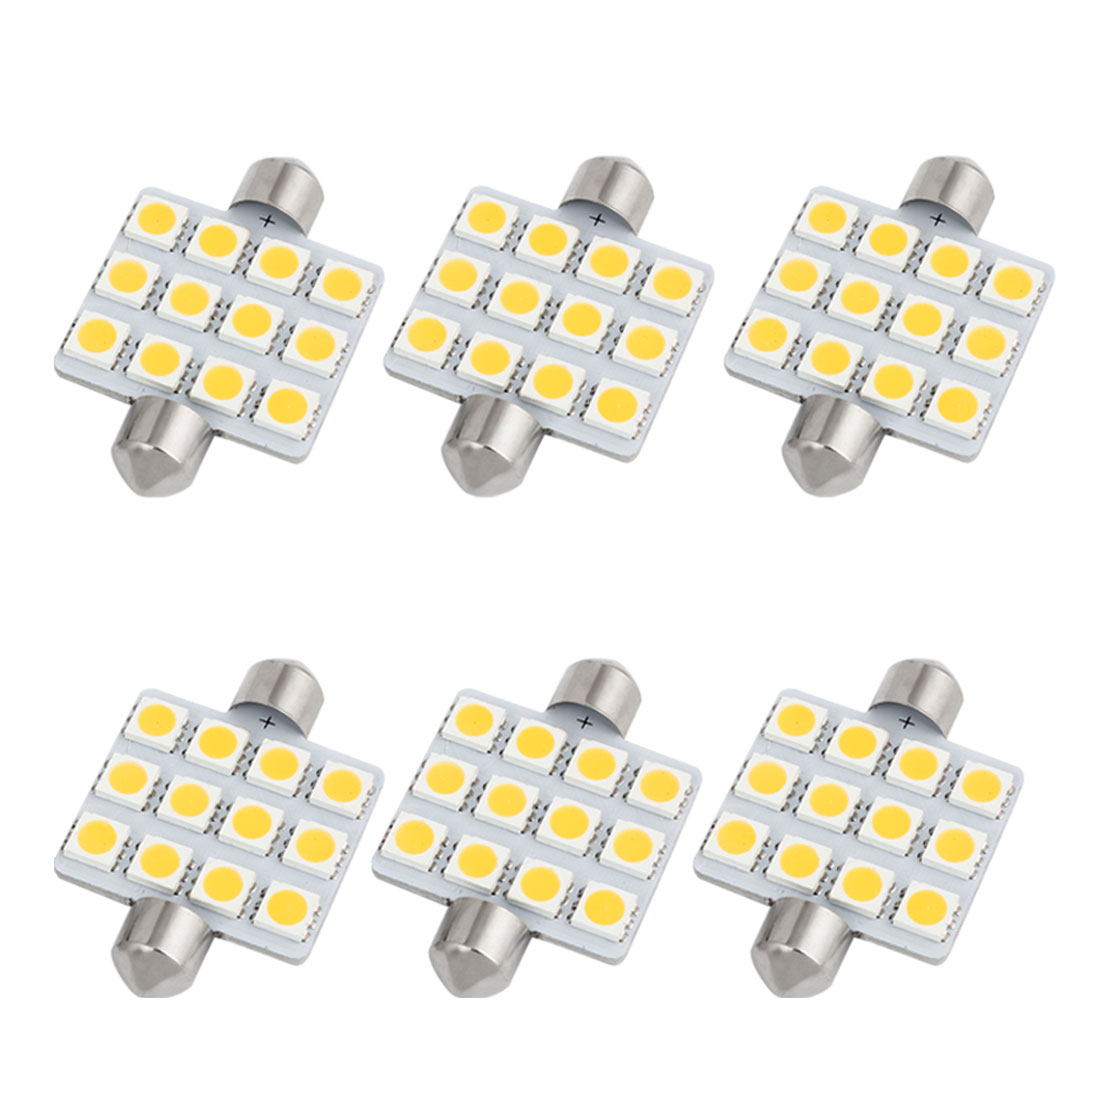 6pcs 41mm 5050 SMD 12-LED Festoon Dome Light Warm White 6429 214-2 211-2 Internal